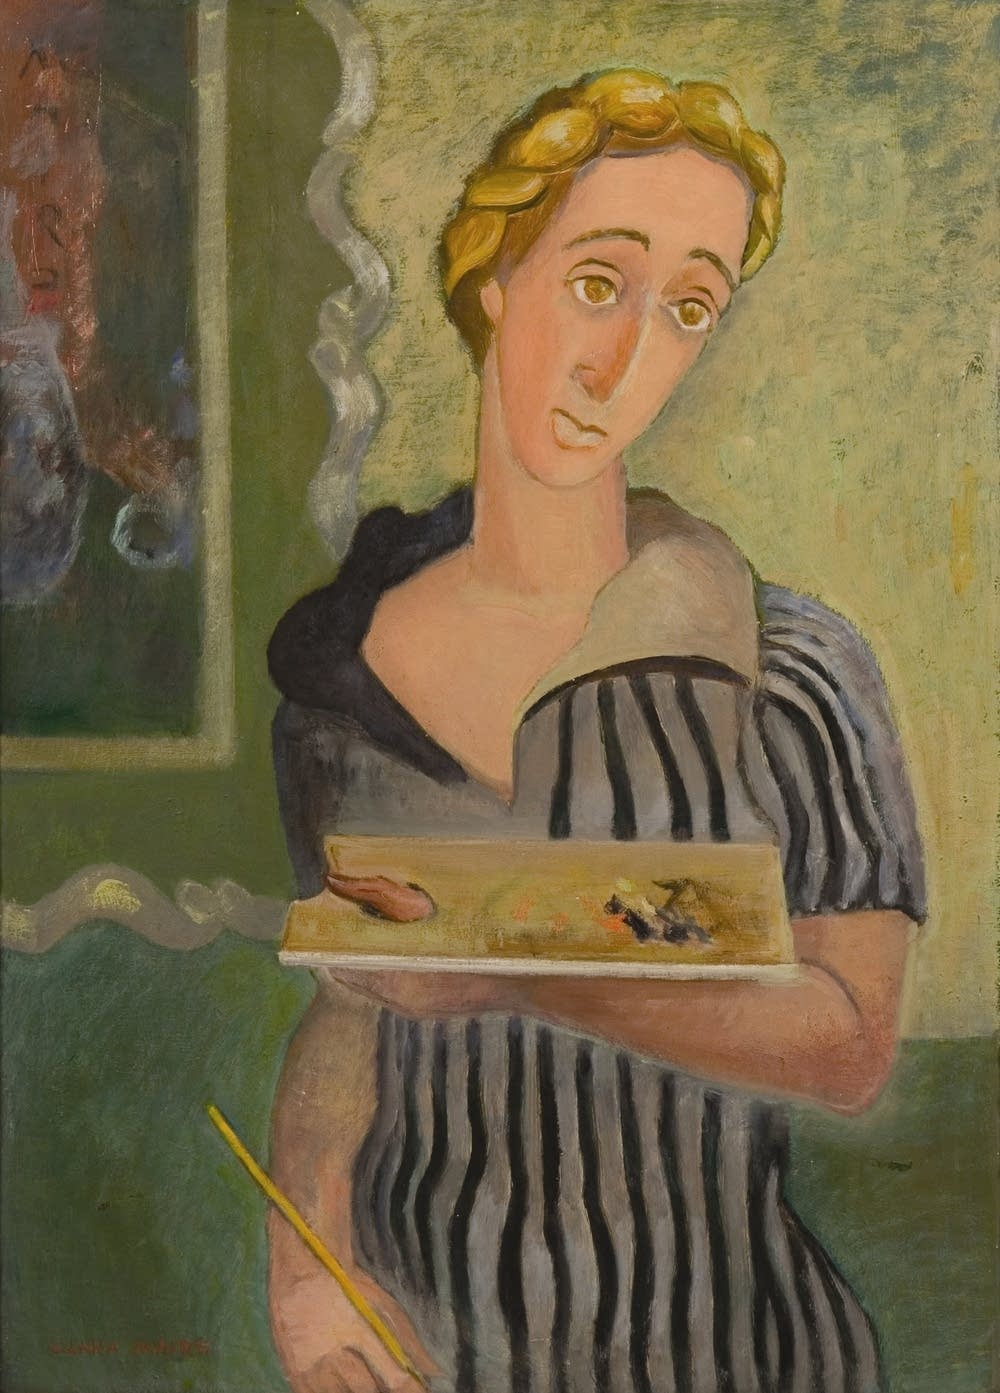 Clara Mairs self-portrait